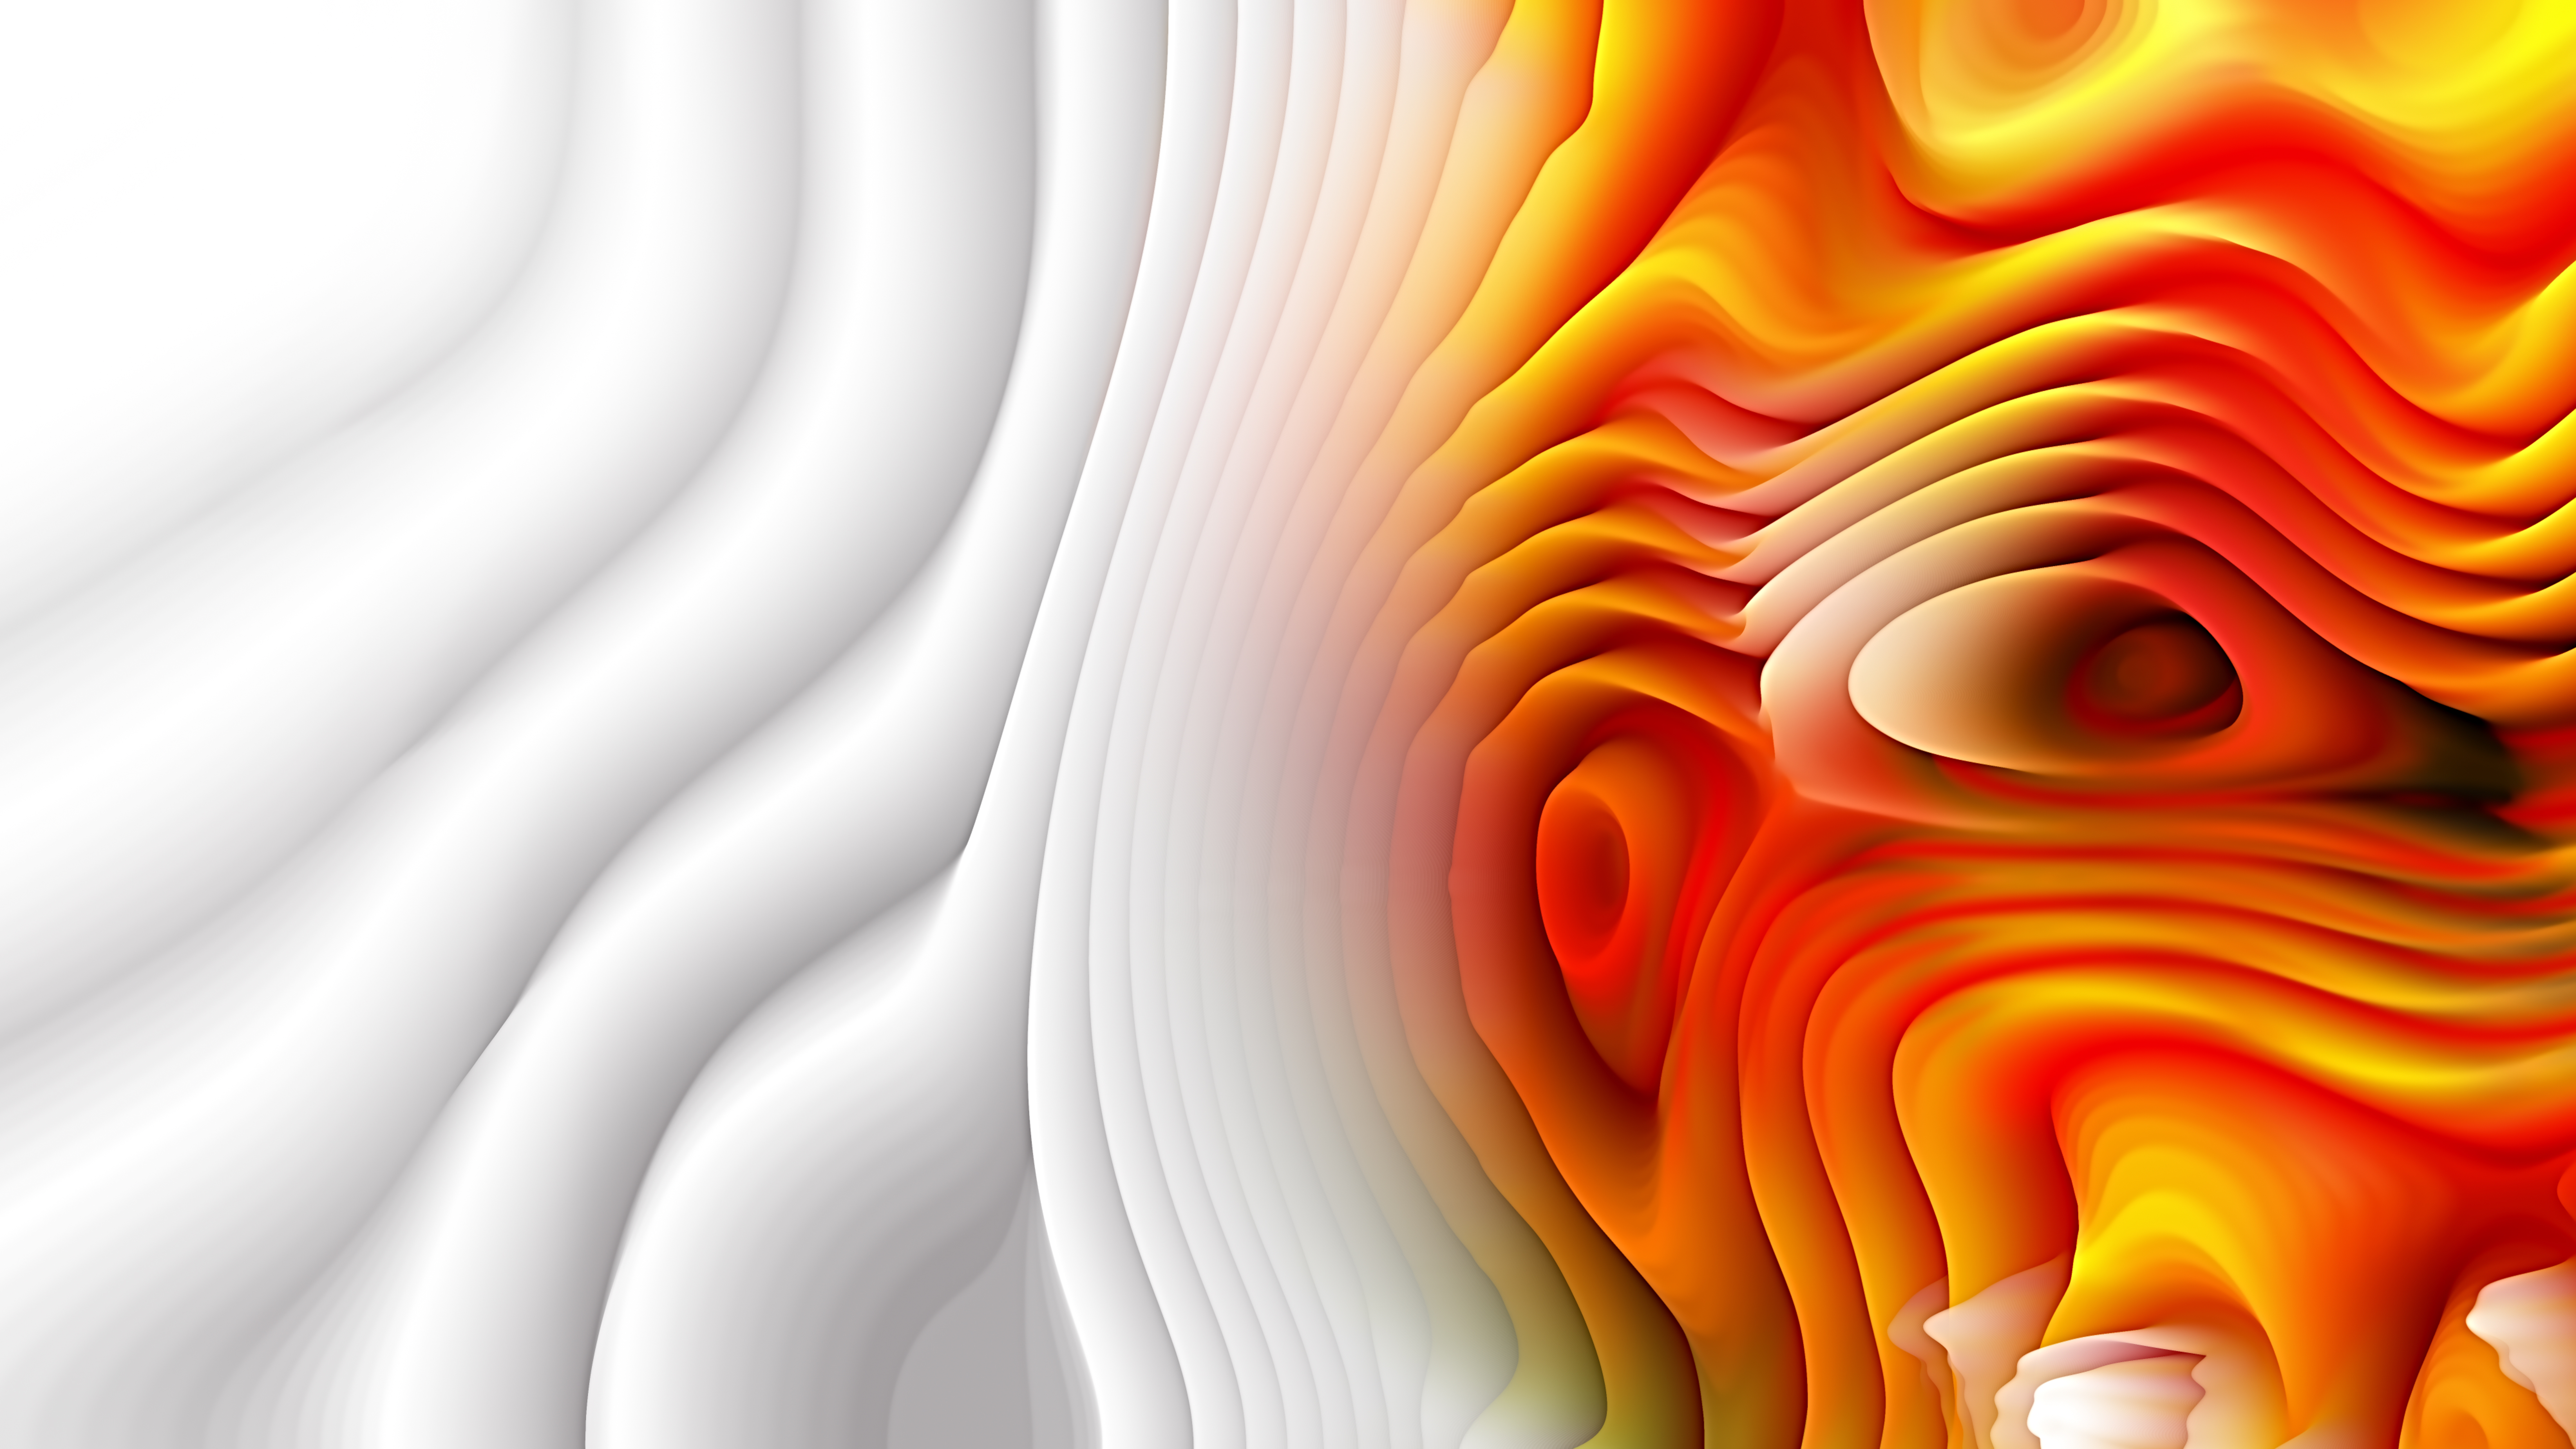 Abstract Orange and White Curve Texture